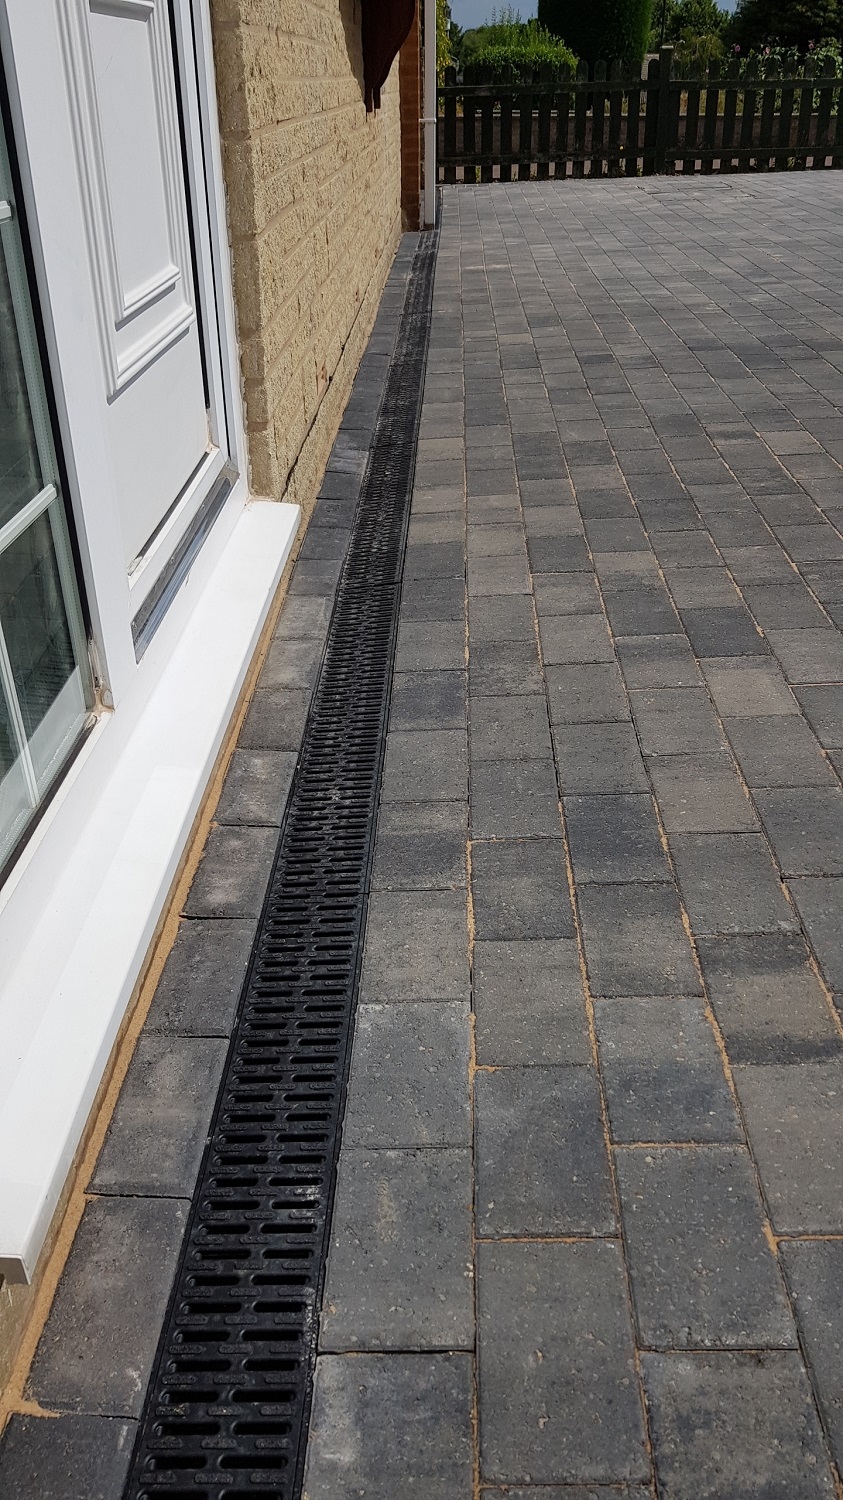 C36 Plaspave Premia Granite Stone Block Paving Driveway at Linacre Woods in Chesterfield